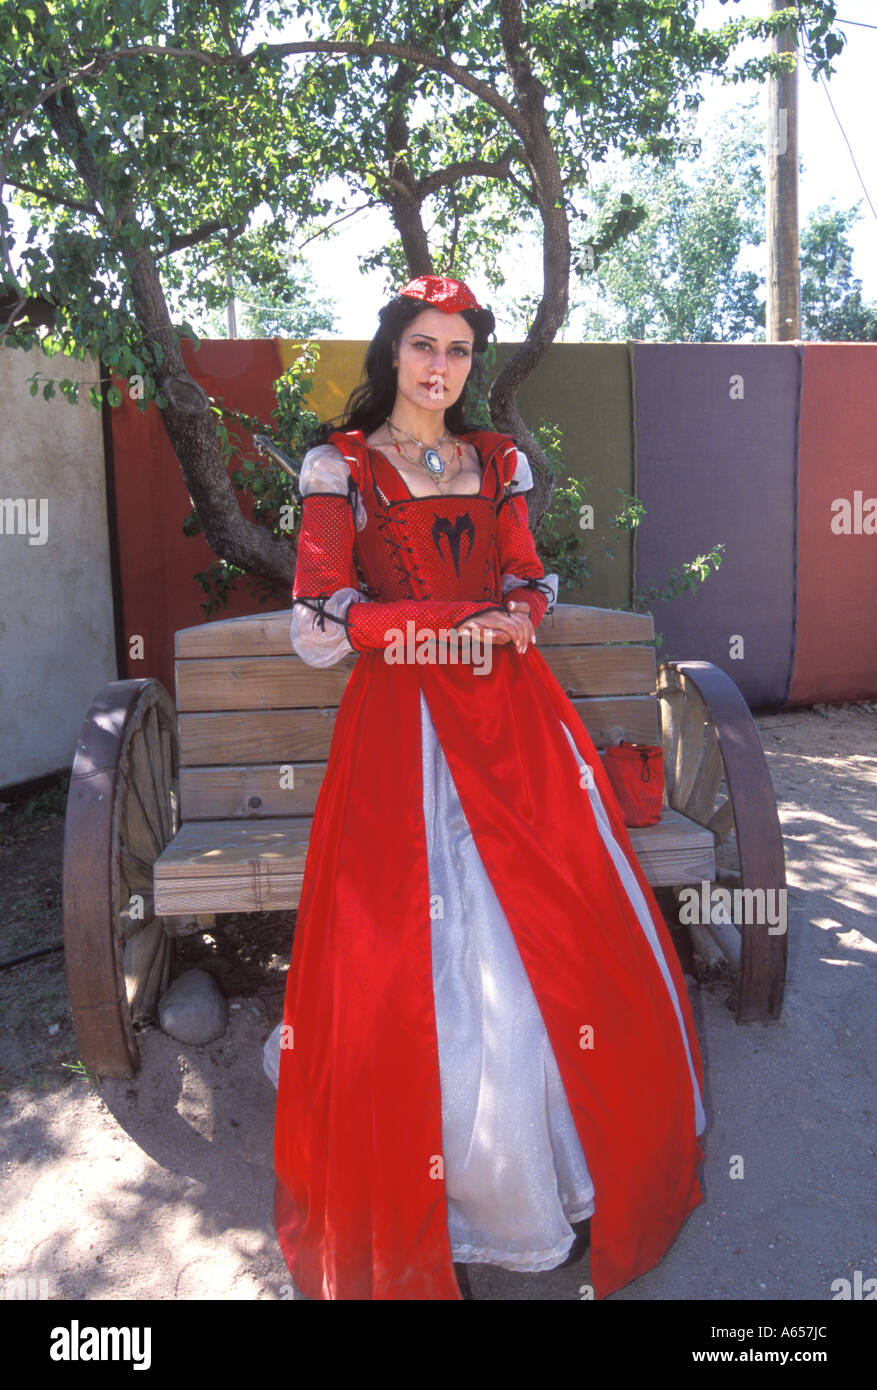 The Renaissance Pleasure Faire Glen Helen Park San Bernardino California  United States of America - Stock Image